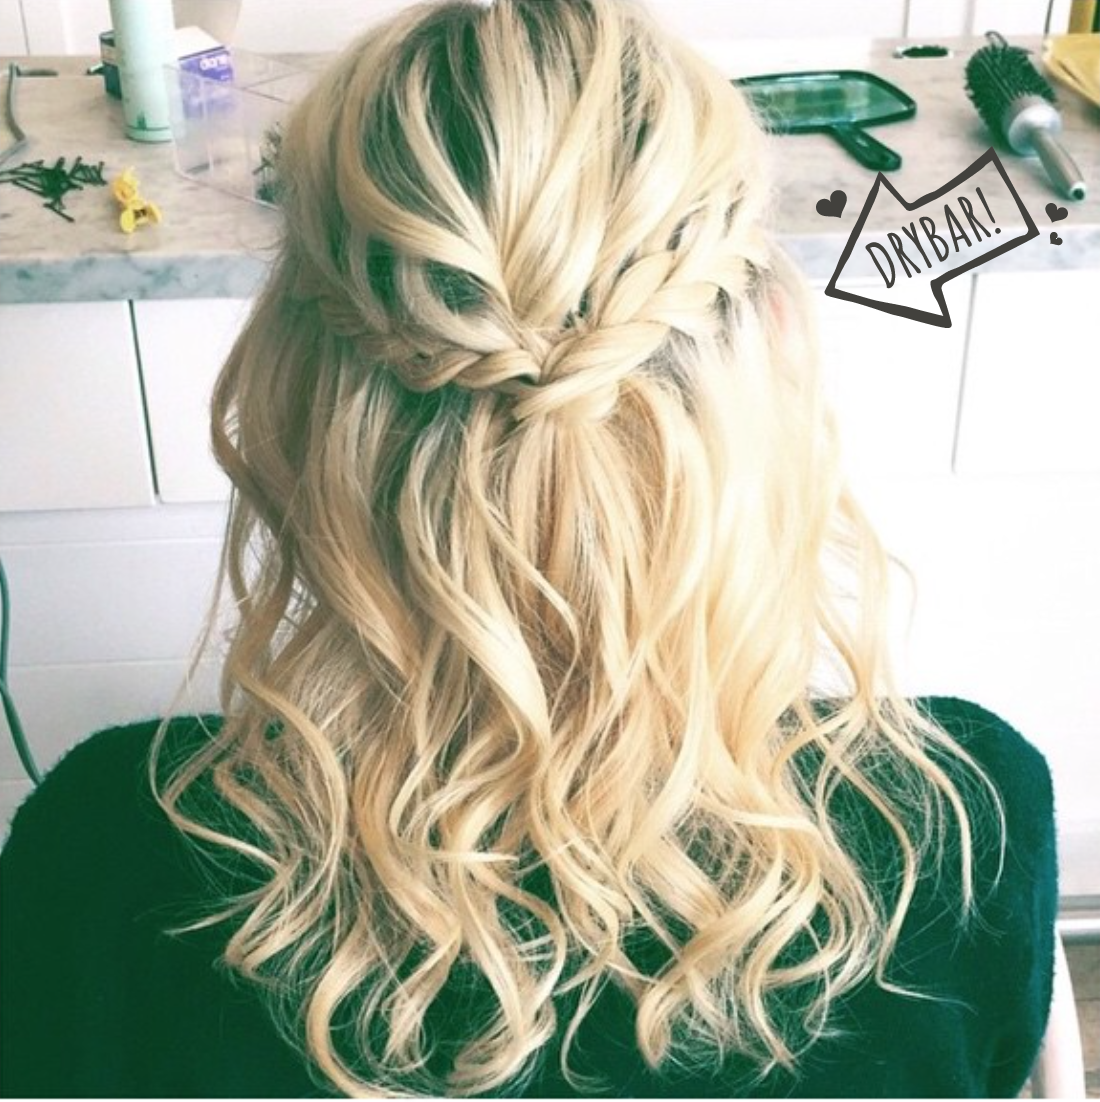 This #MaiTai with a braid is PERFECT!